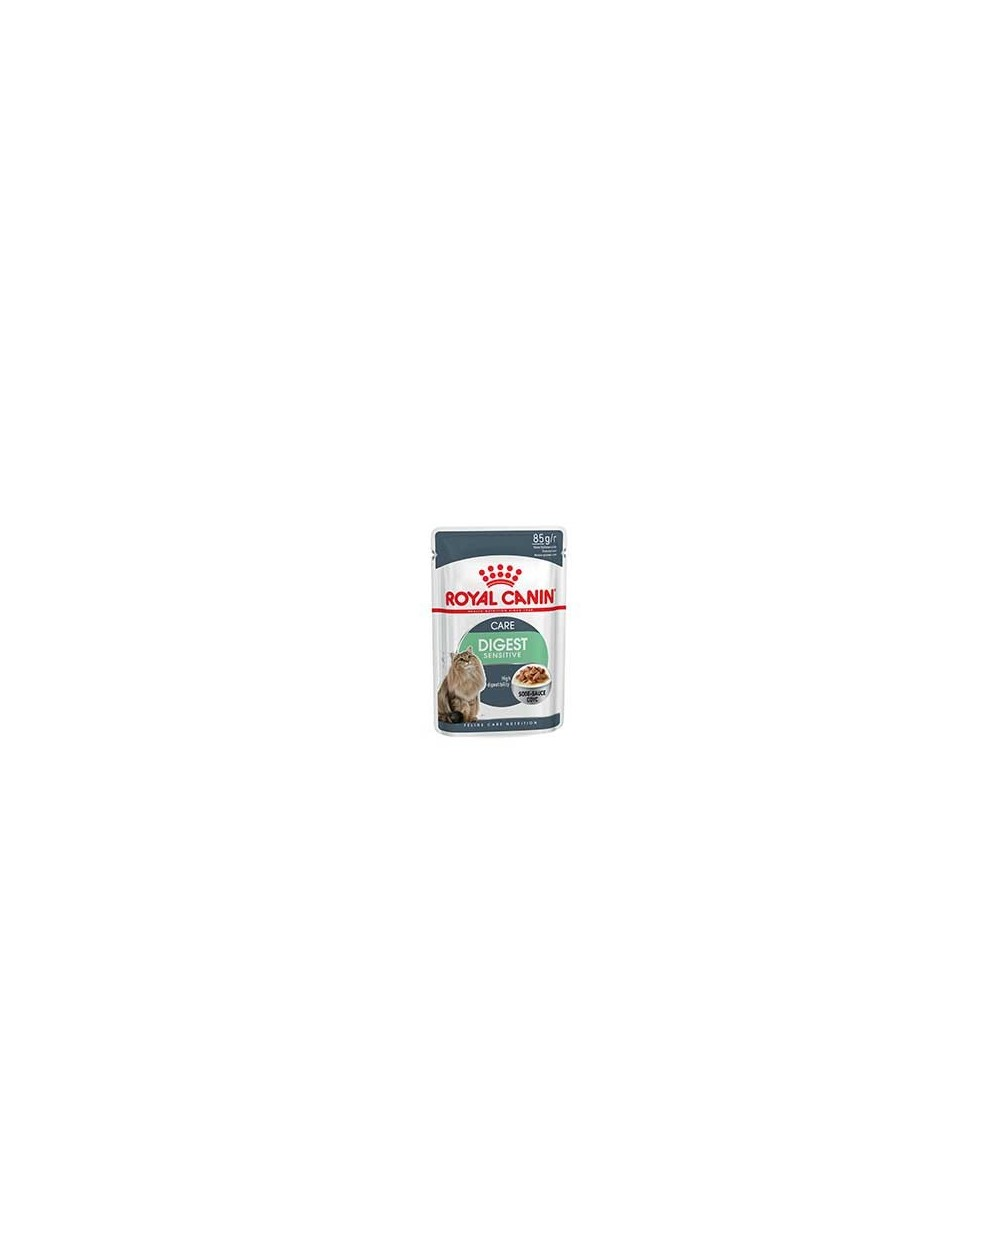 Royal Canin Feline Health Nutrition Wet - Digest Sensitive in salsa